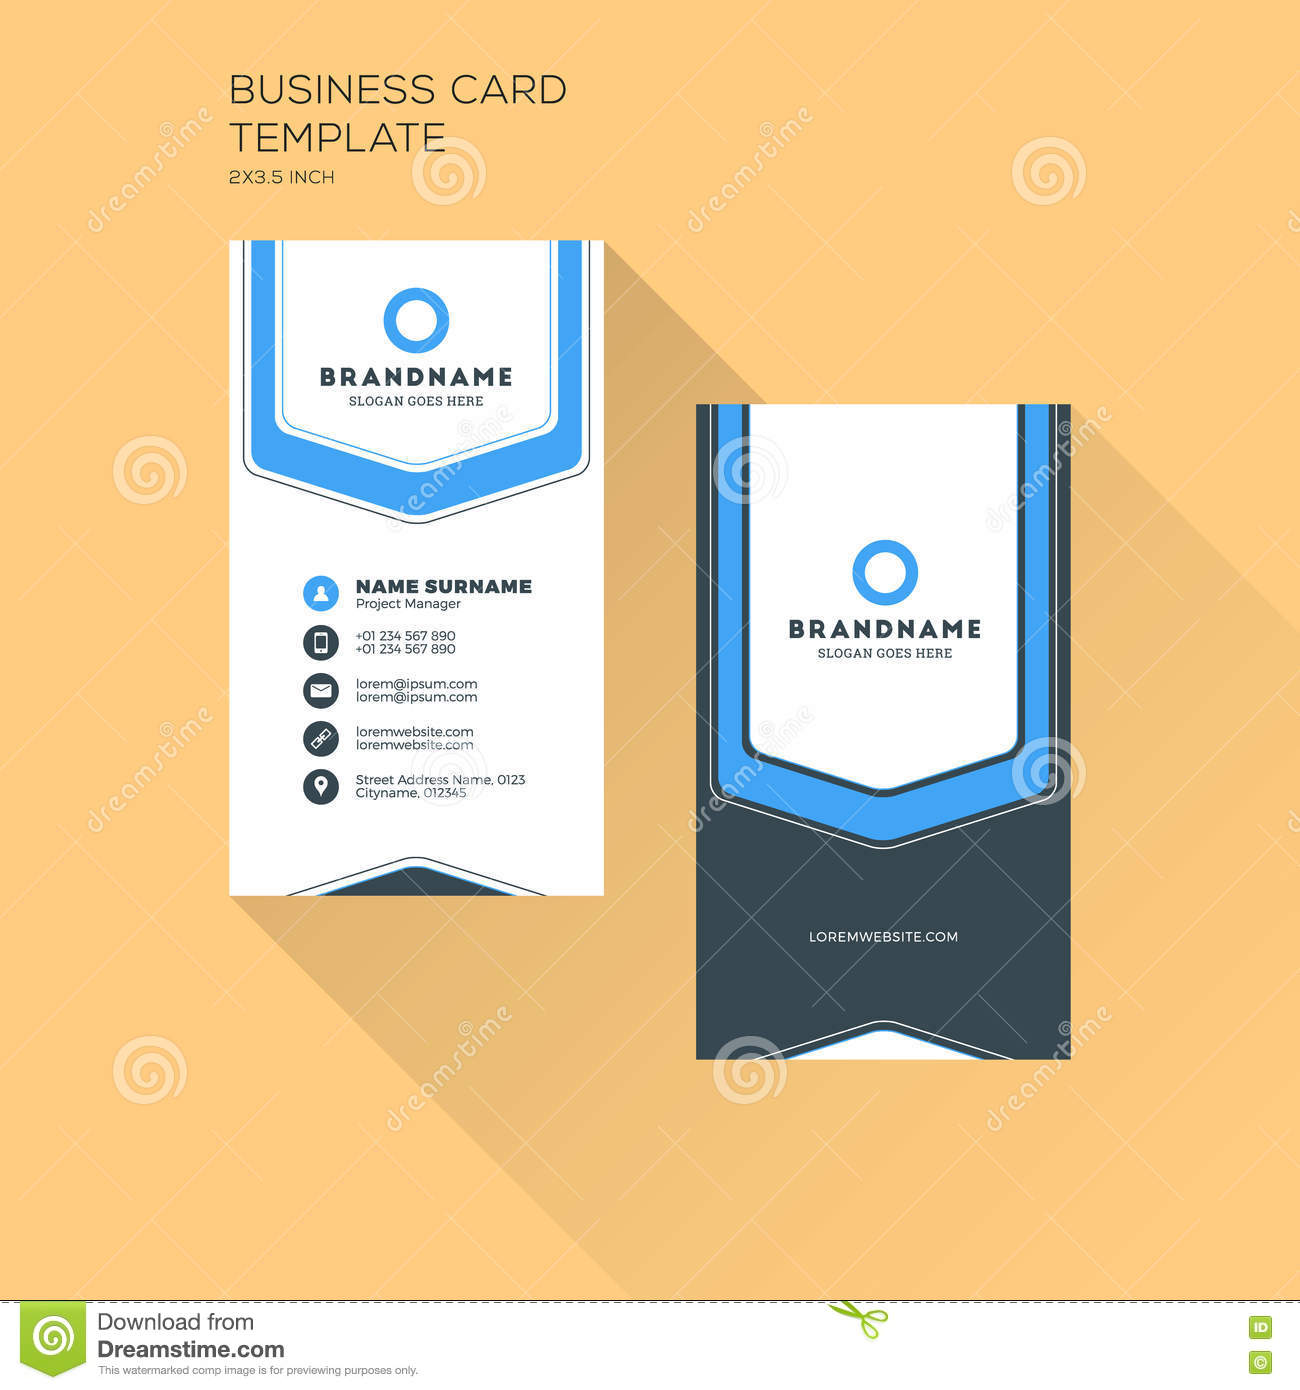 Vertical Business Card Print Template Personal Business Card - Business card vertical template